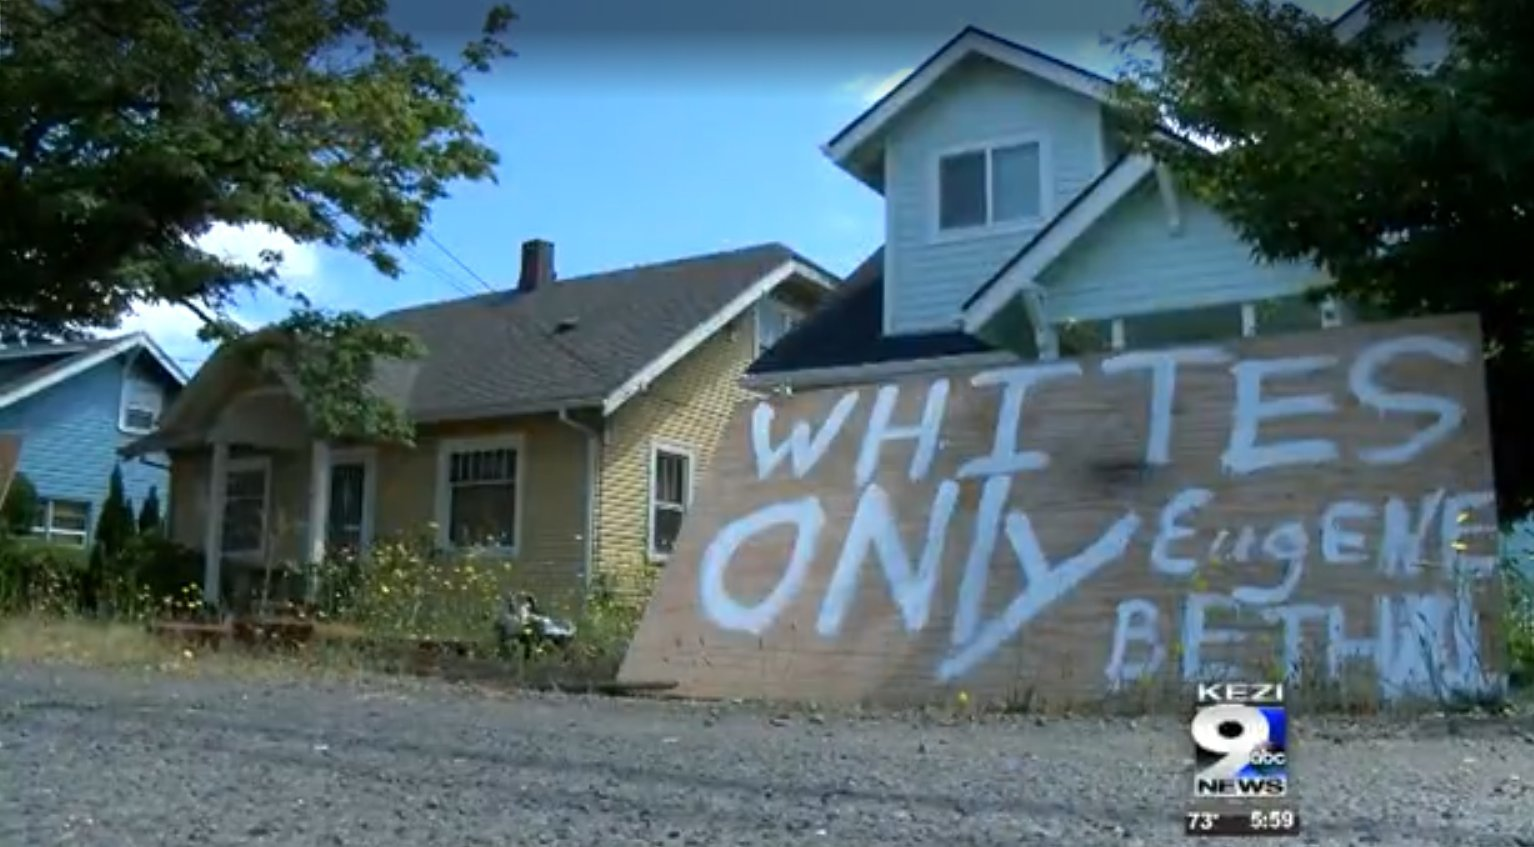 whites only house for sale